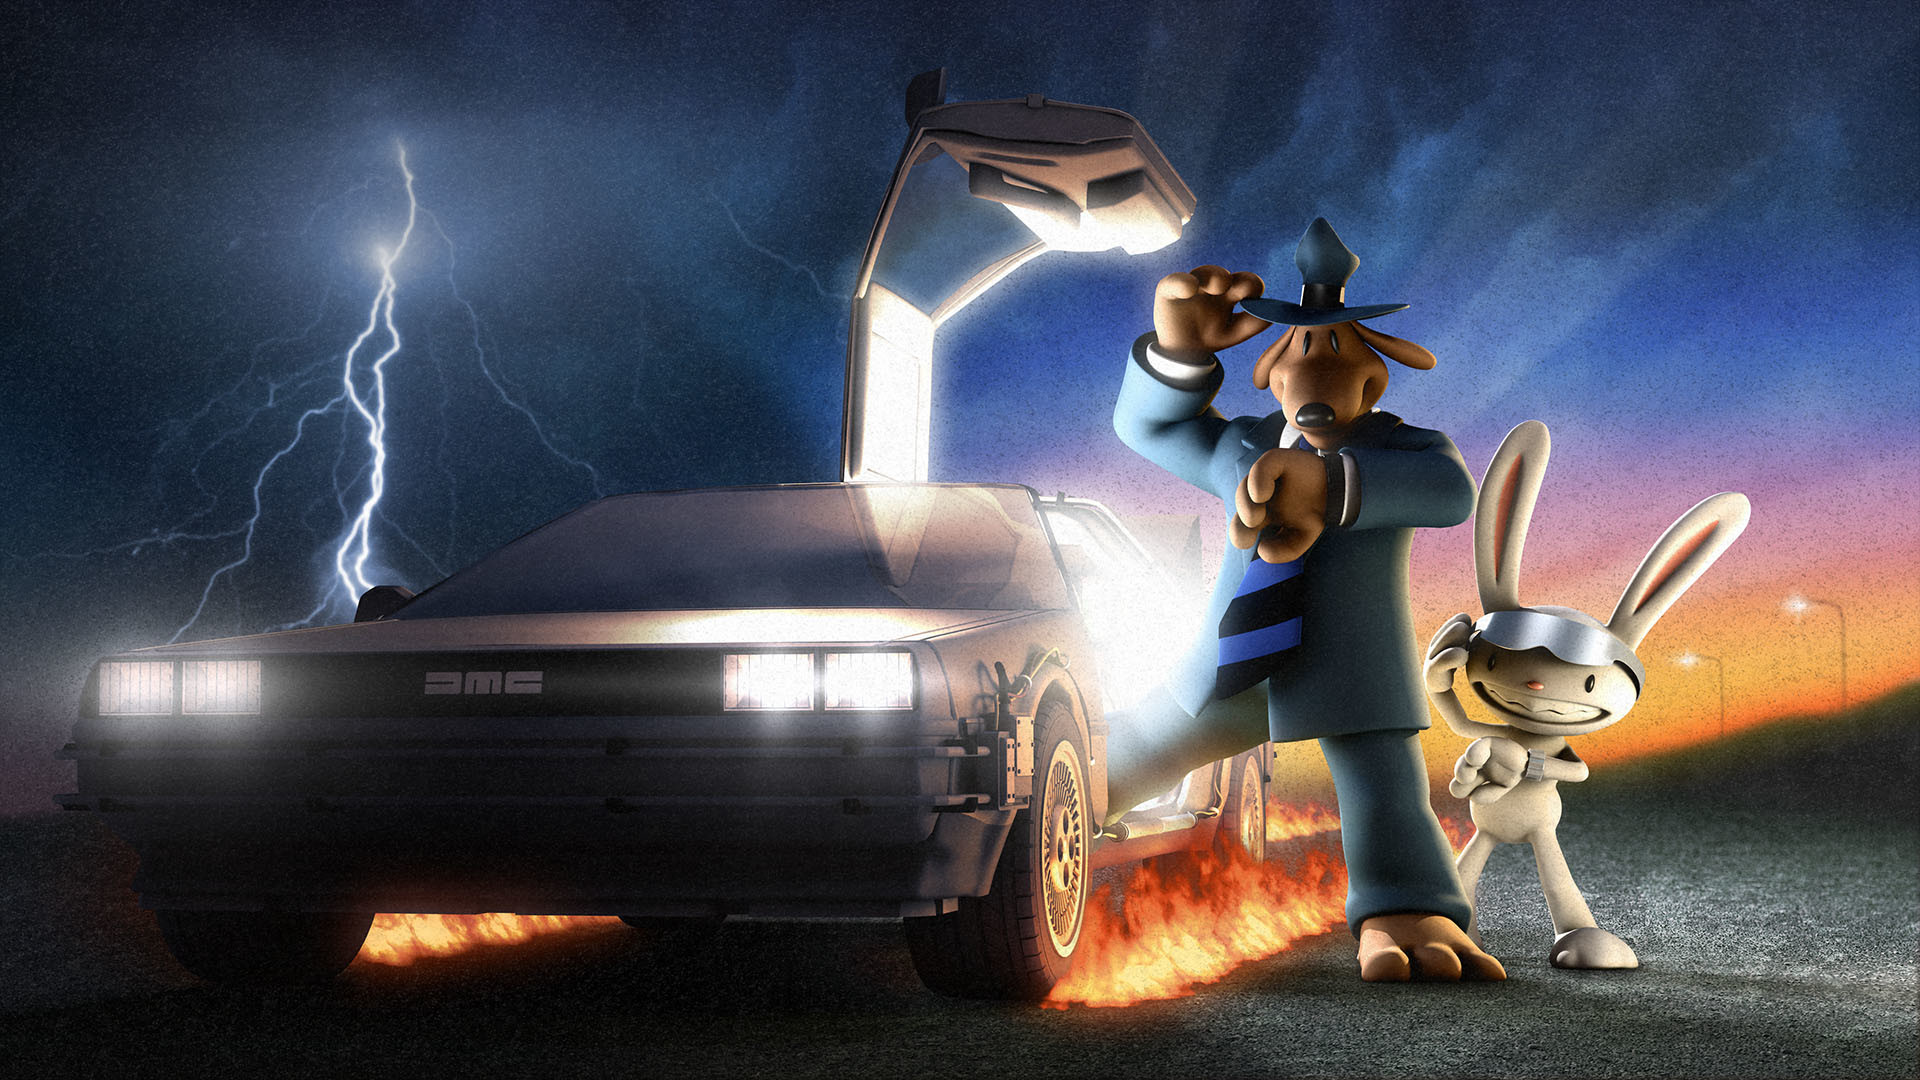 1920x1080 Video games Back to the Future Sam And Max DeLorean DMC-12 wallpaper |   | 60232 | WallpaperUP